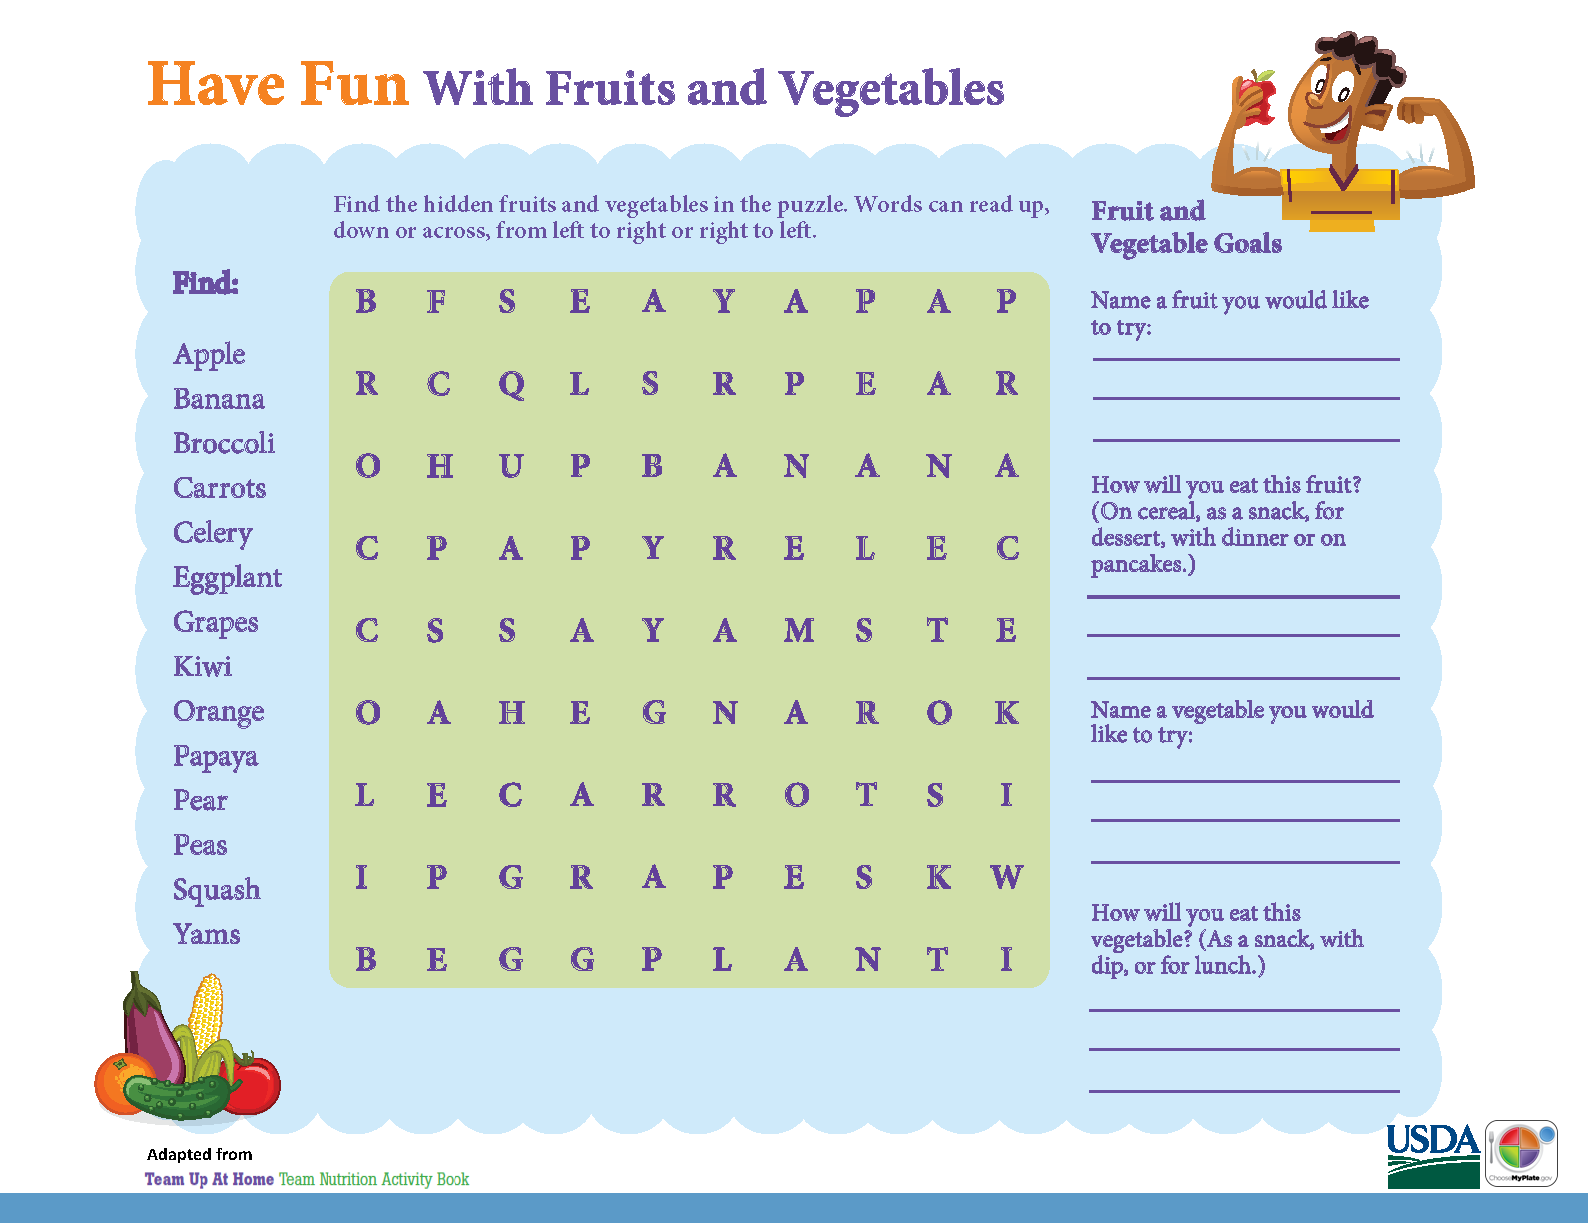 Have Fun with #Fruits & #Vegetables\' in this #MyPlate activity sheet ...